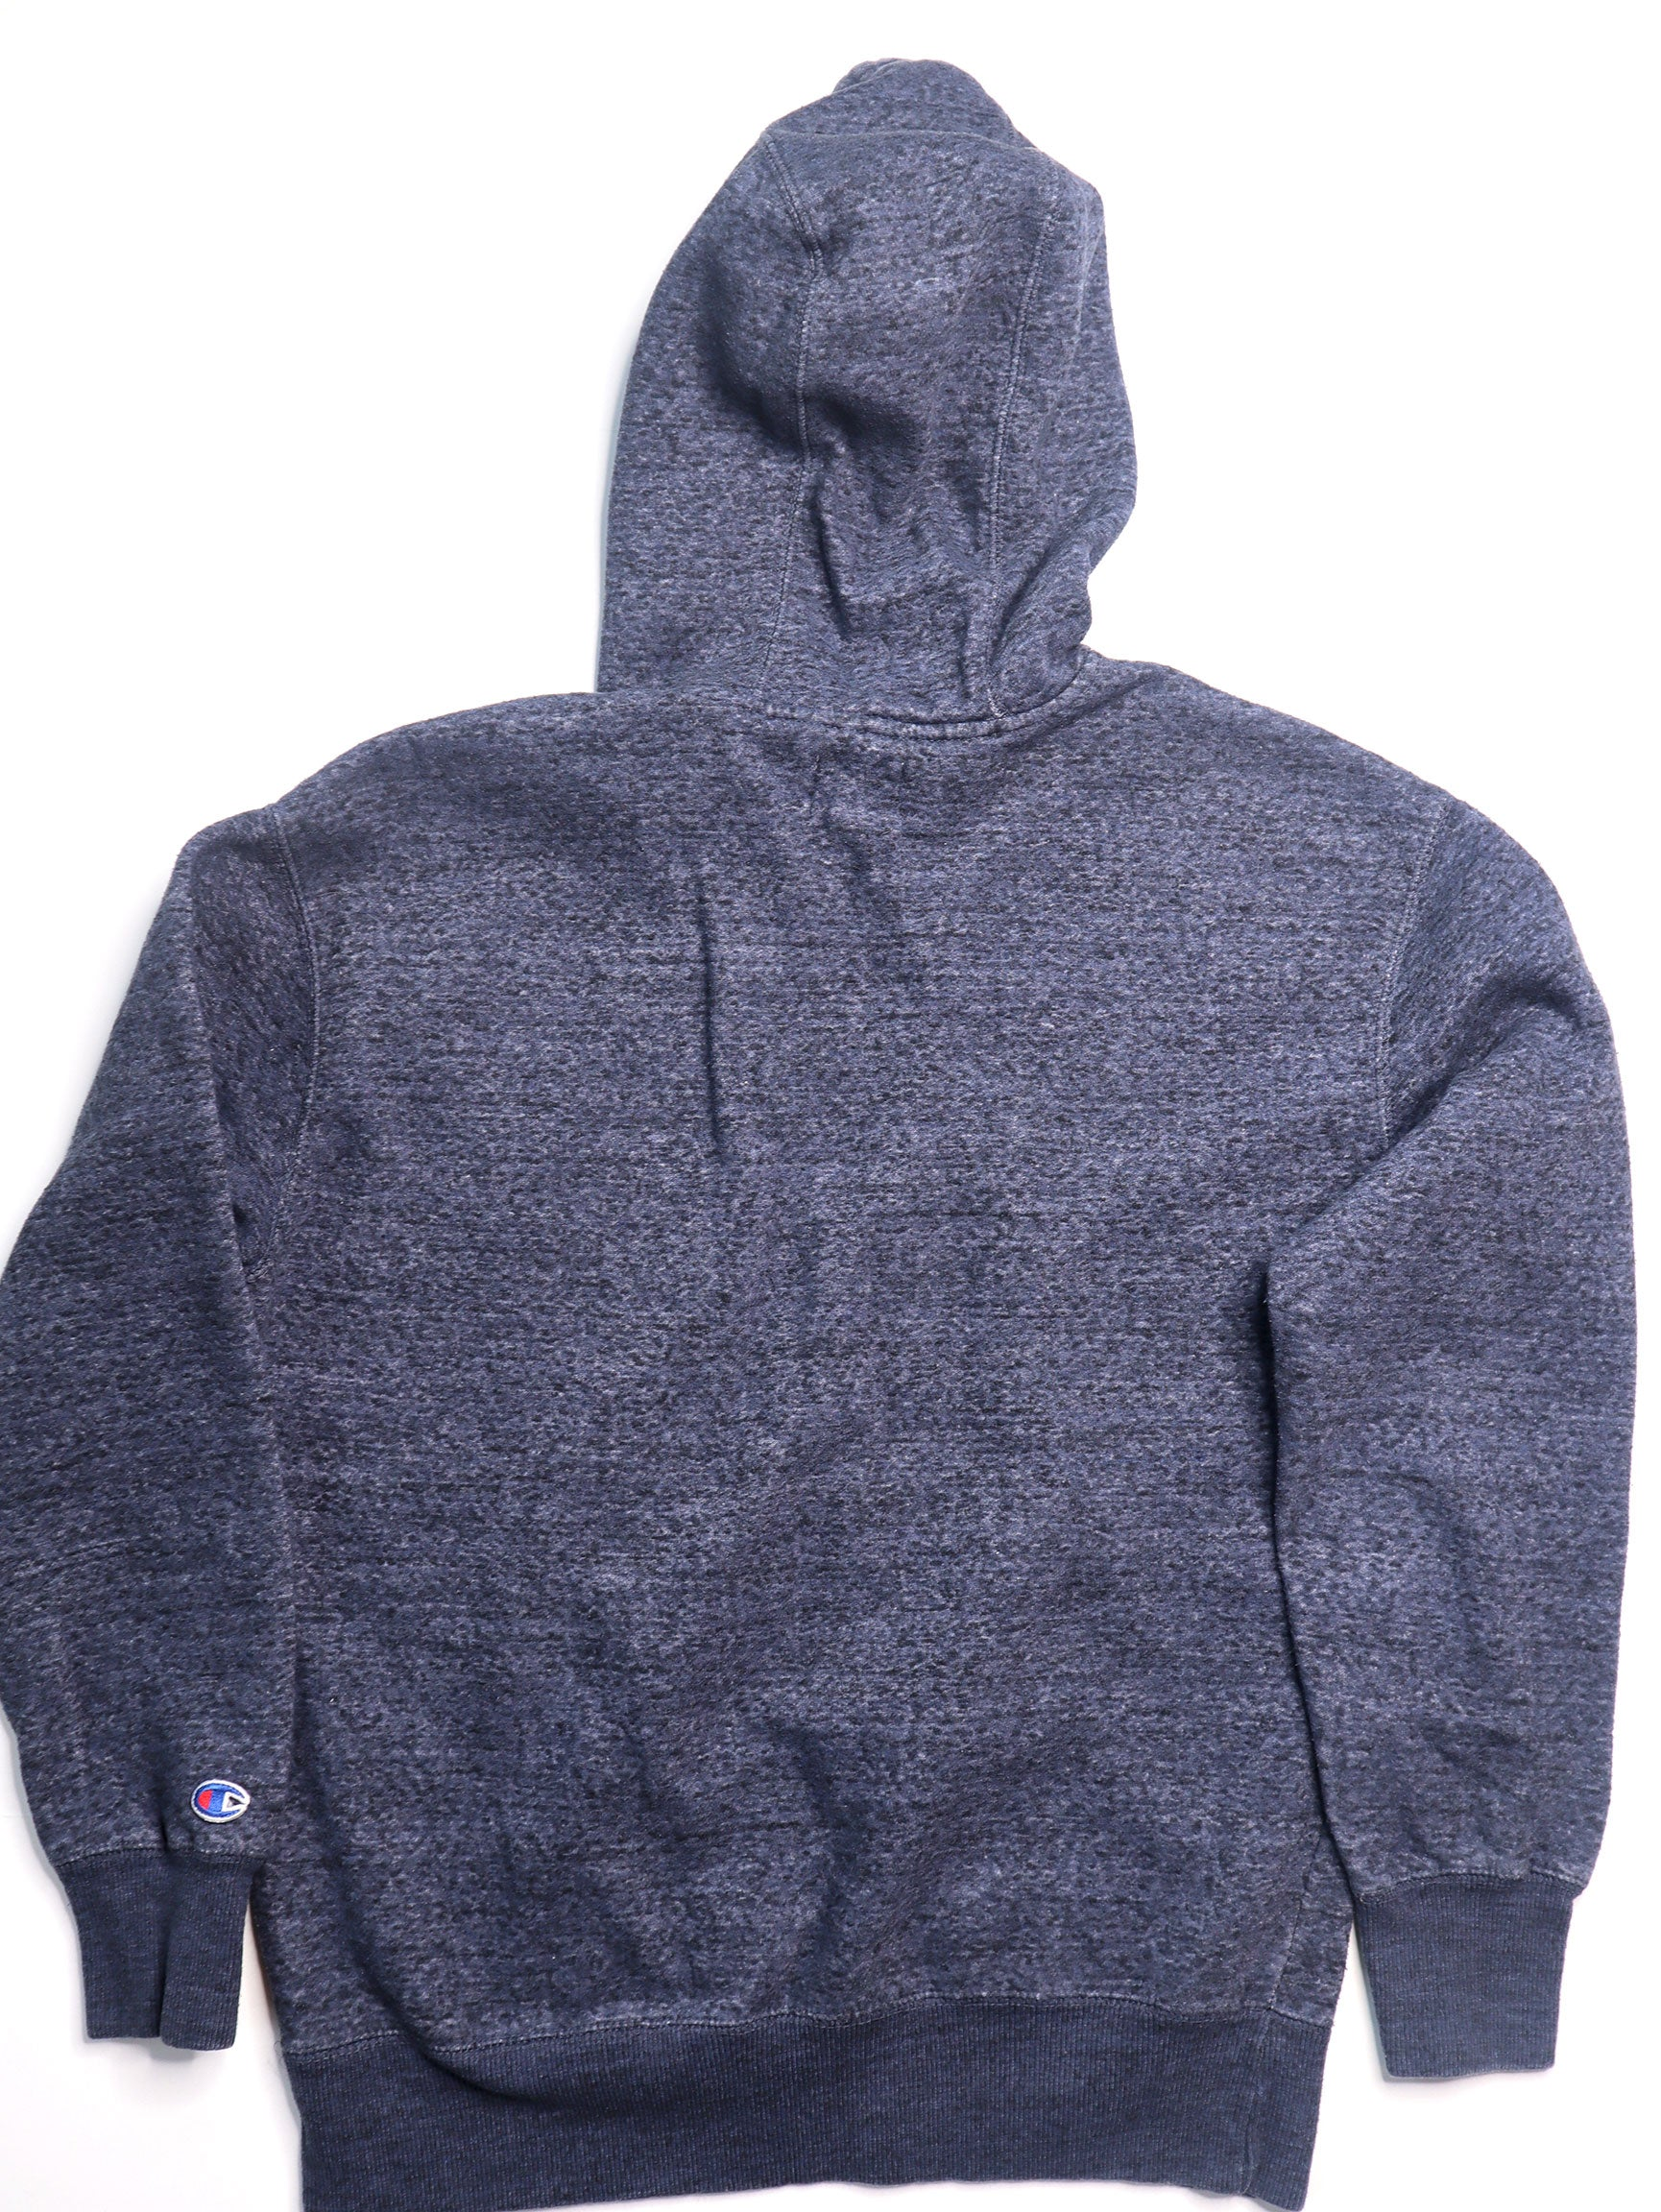 Vintage Champion Heather Blue Hoodie